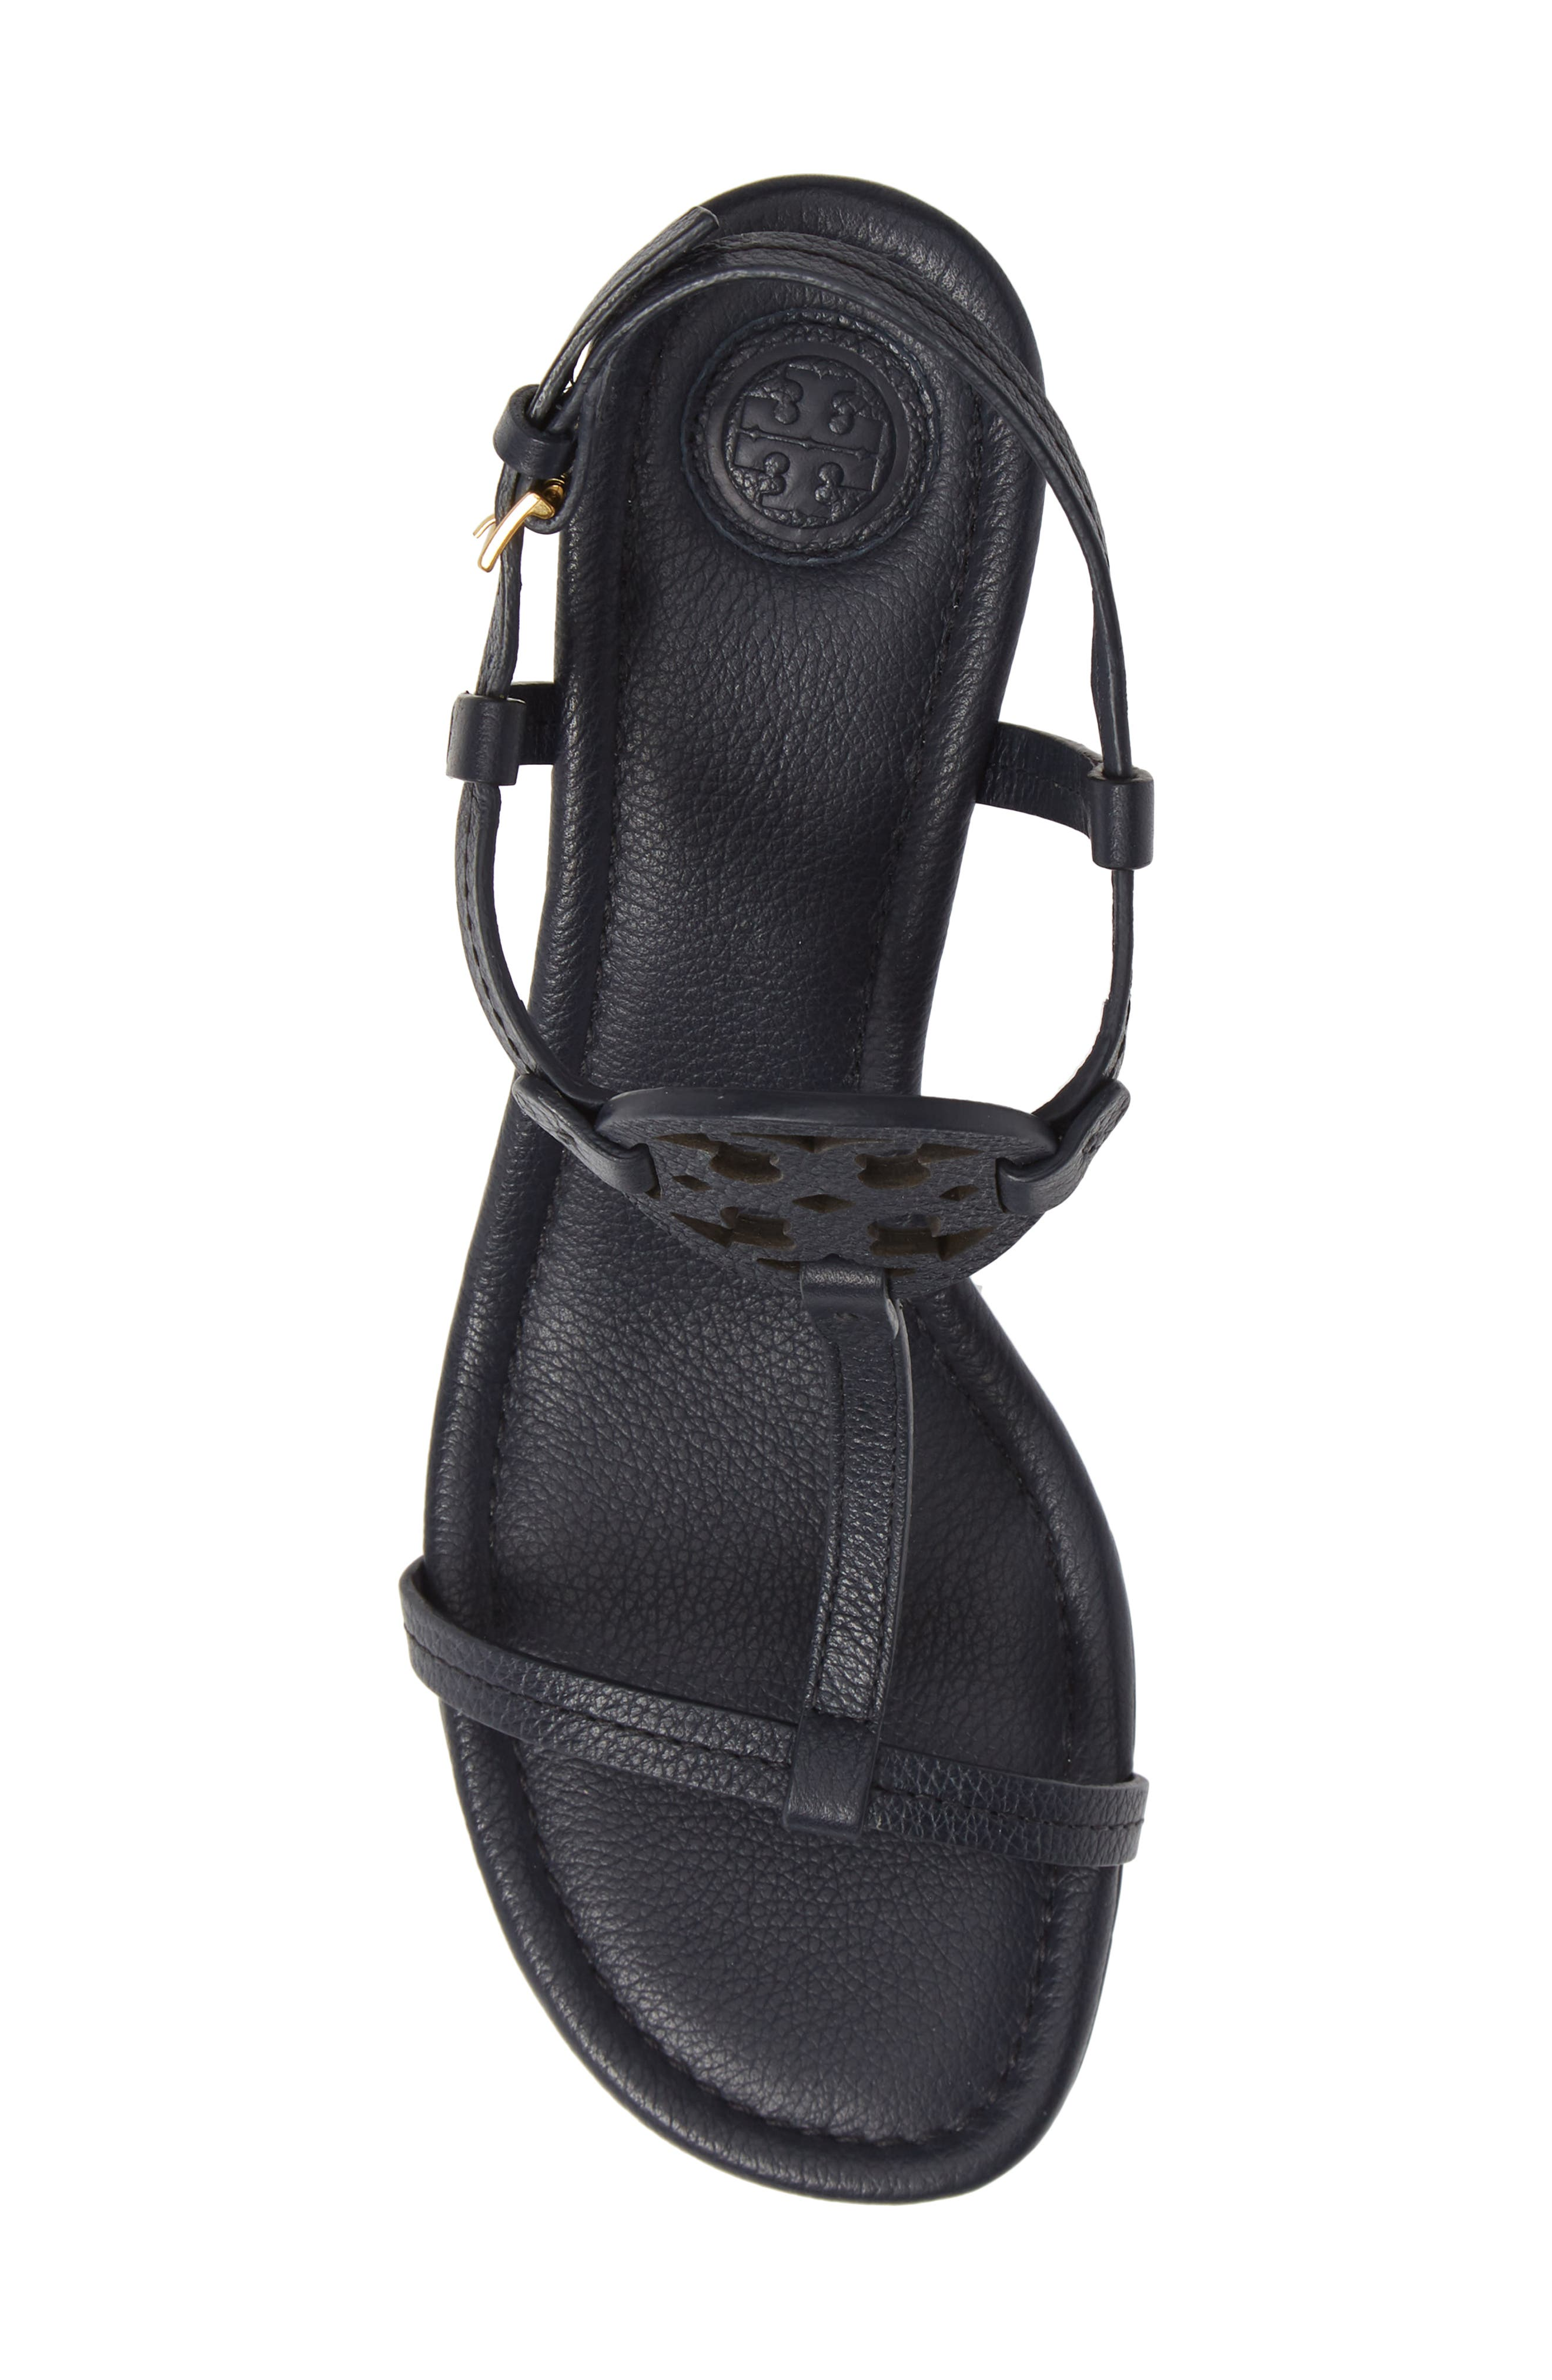 TORY BURCH, Miller Wedge Sandal, Alternate thumbnail 5, color, PERFECT NAVY